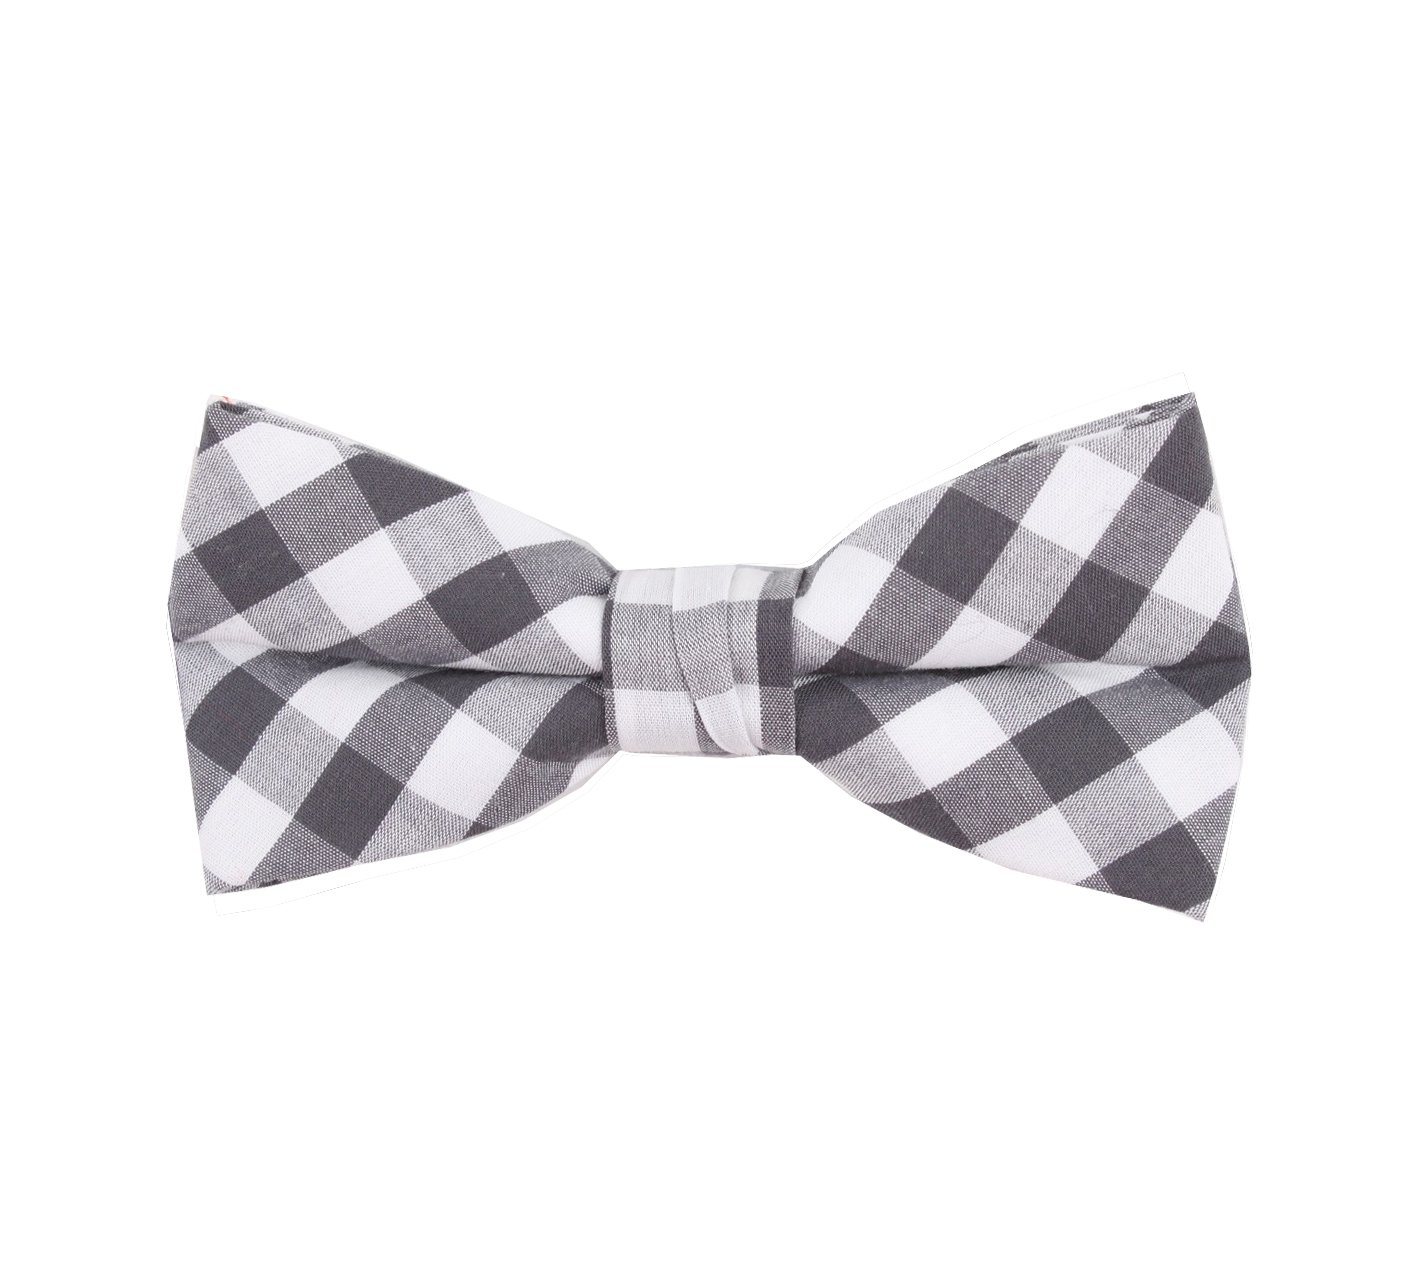 Born to Love - Boys Kids Pre Tied Bowtie Christmas Holiday Party Dress Up Bow Tie (Medium, Gray White Checkered)